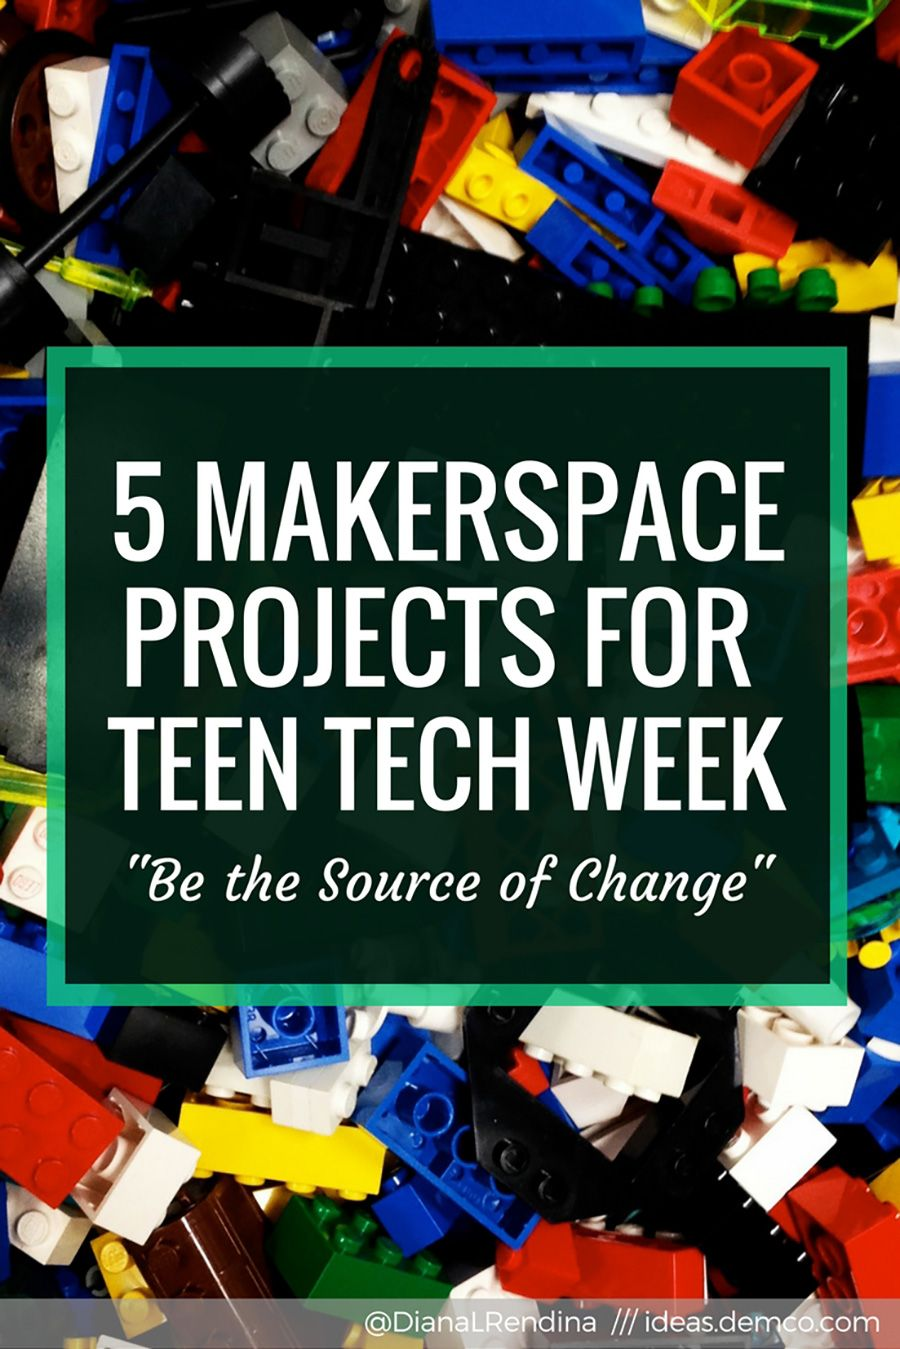 Teen Tech Week is March 5-11 and master maker Diana Rendina has got you covered with 5 makerspace projects that will inspire teens to become change agents.